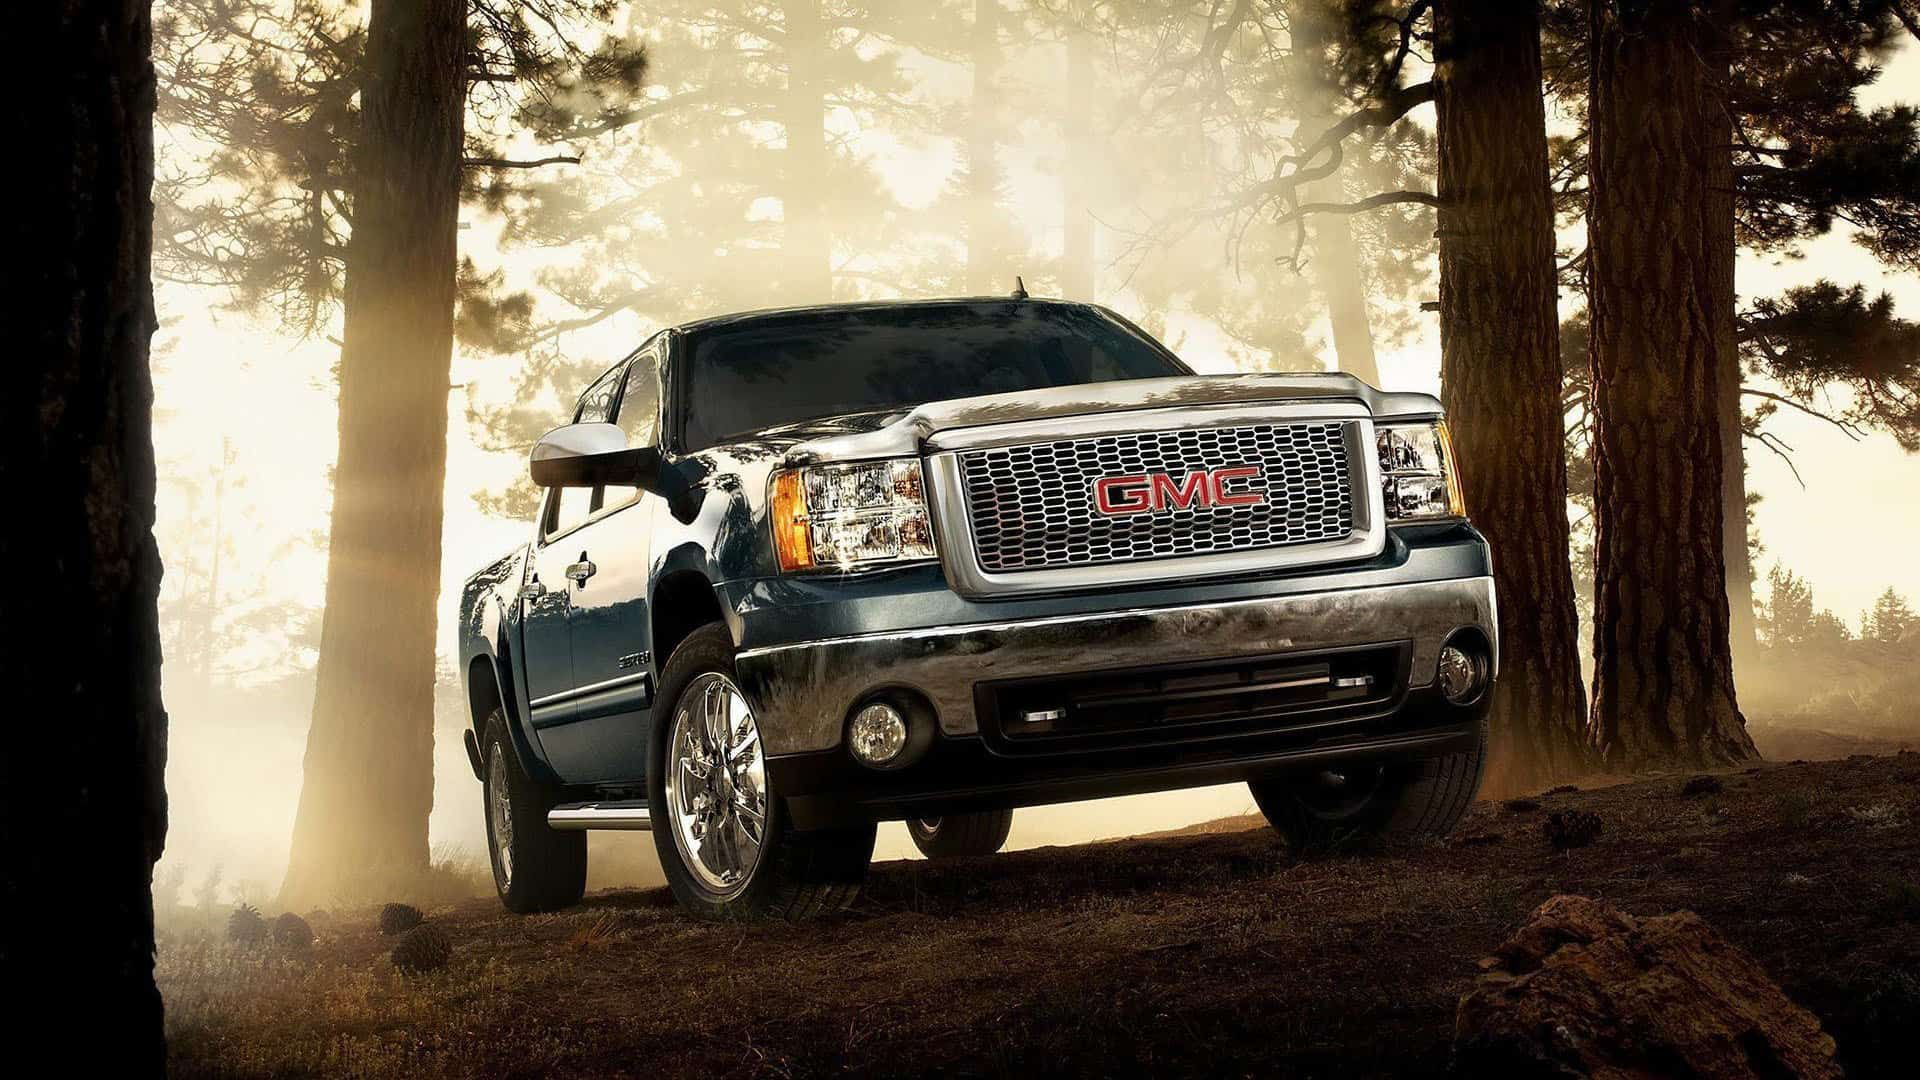 Used GMC for Sale in Colorado Springs